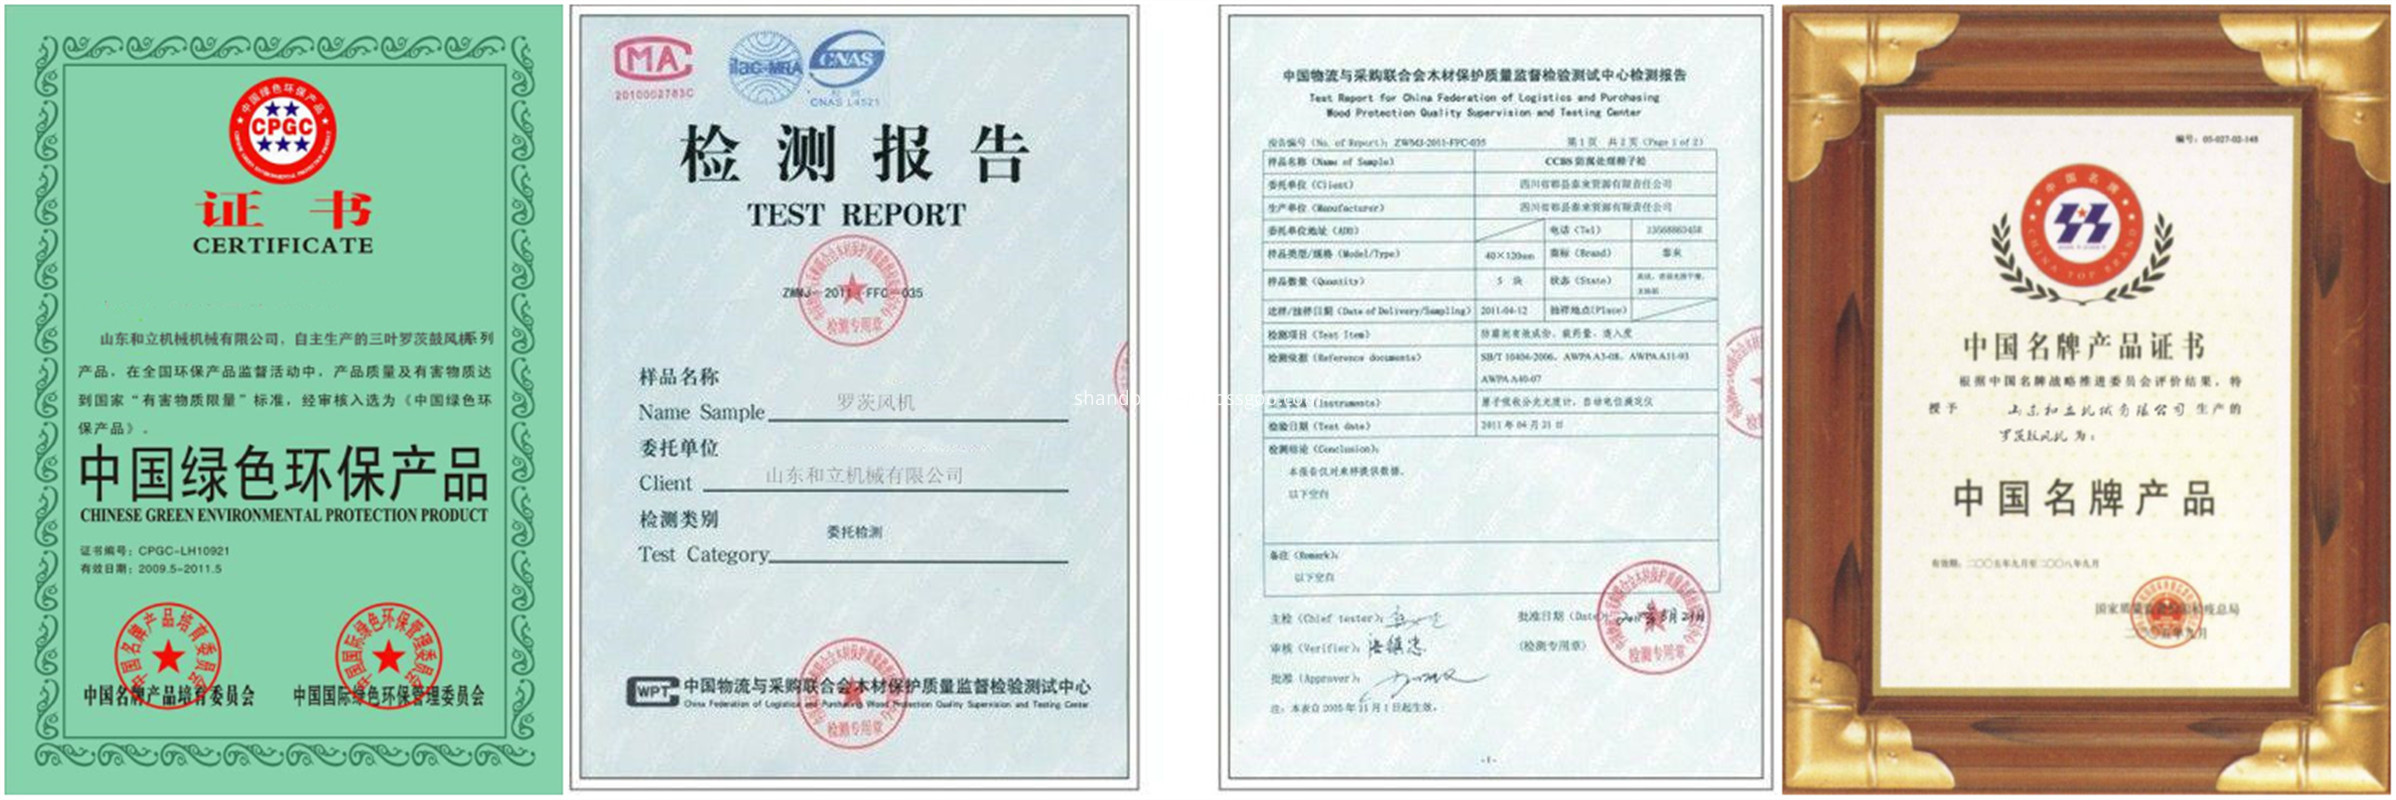 Roots Blower Certificate